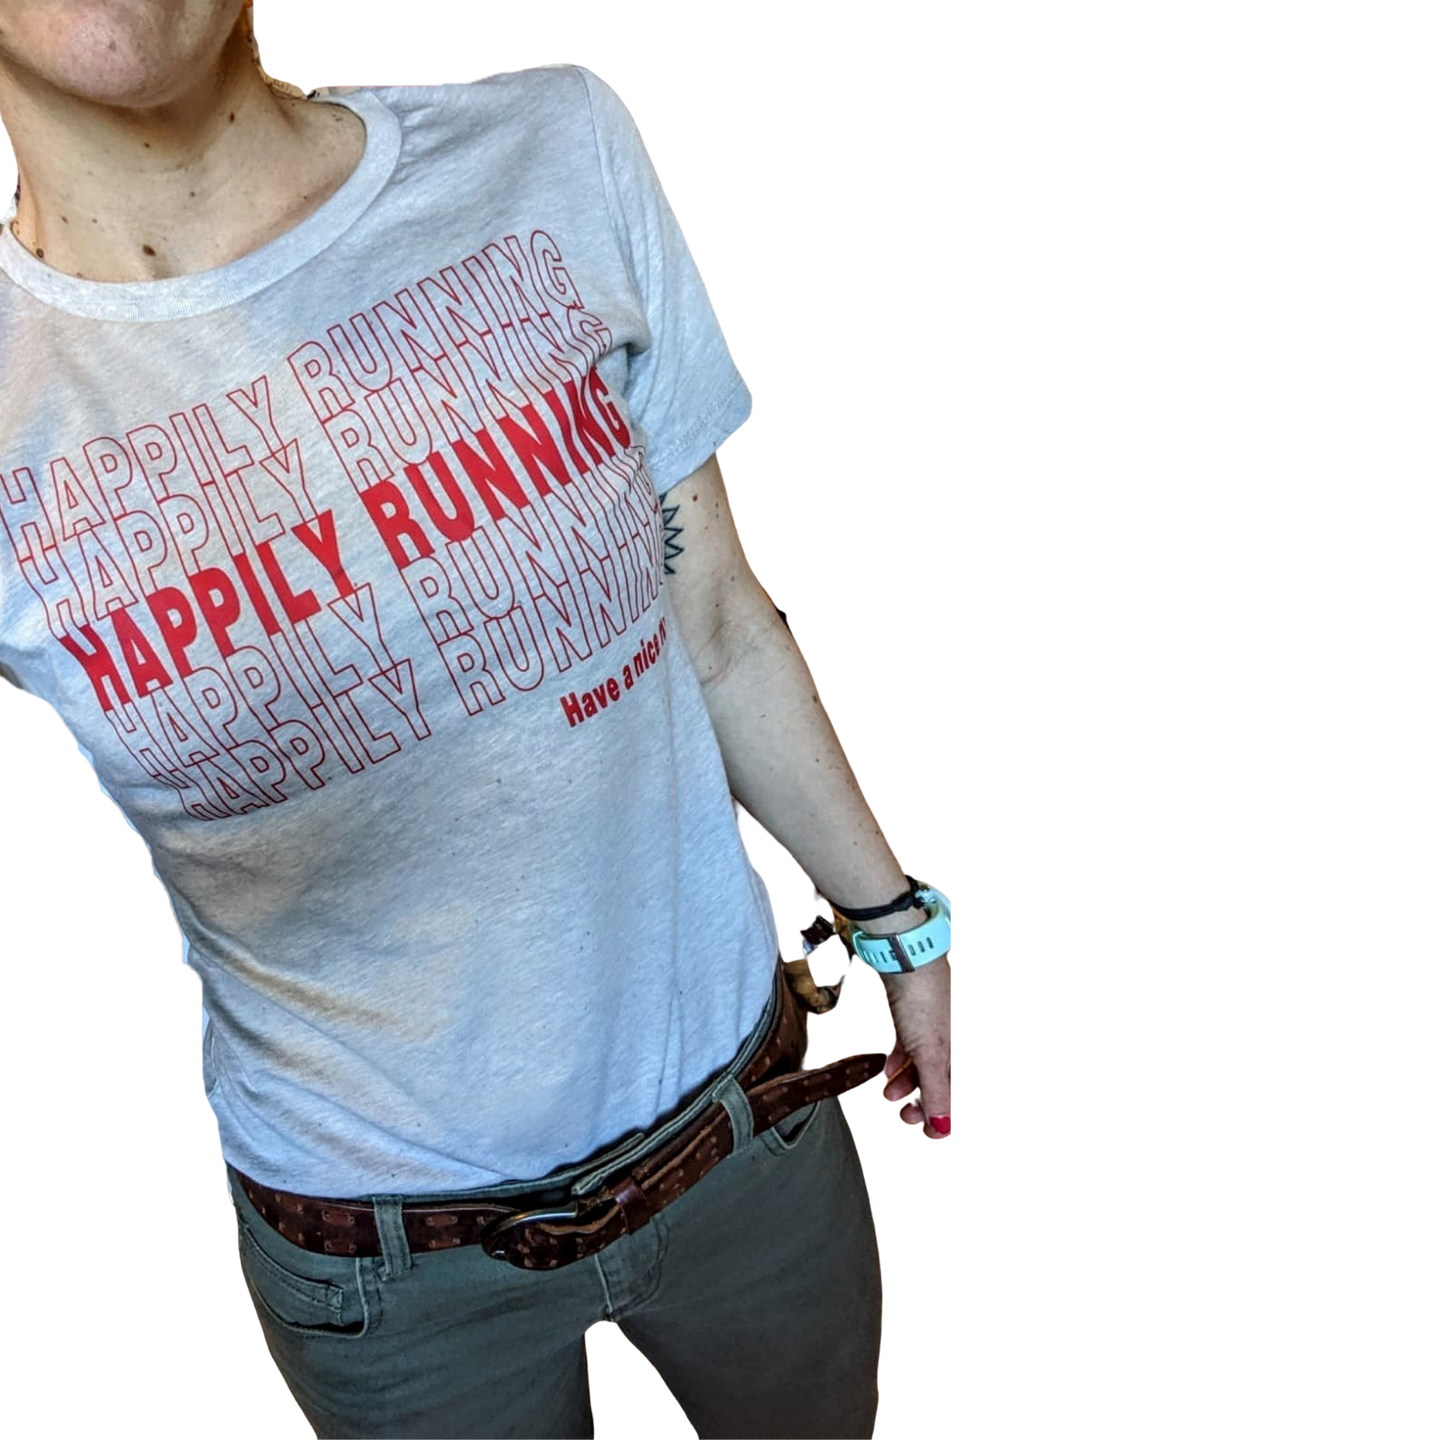 Happily Running Thank you bag Shirt